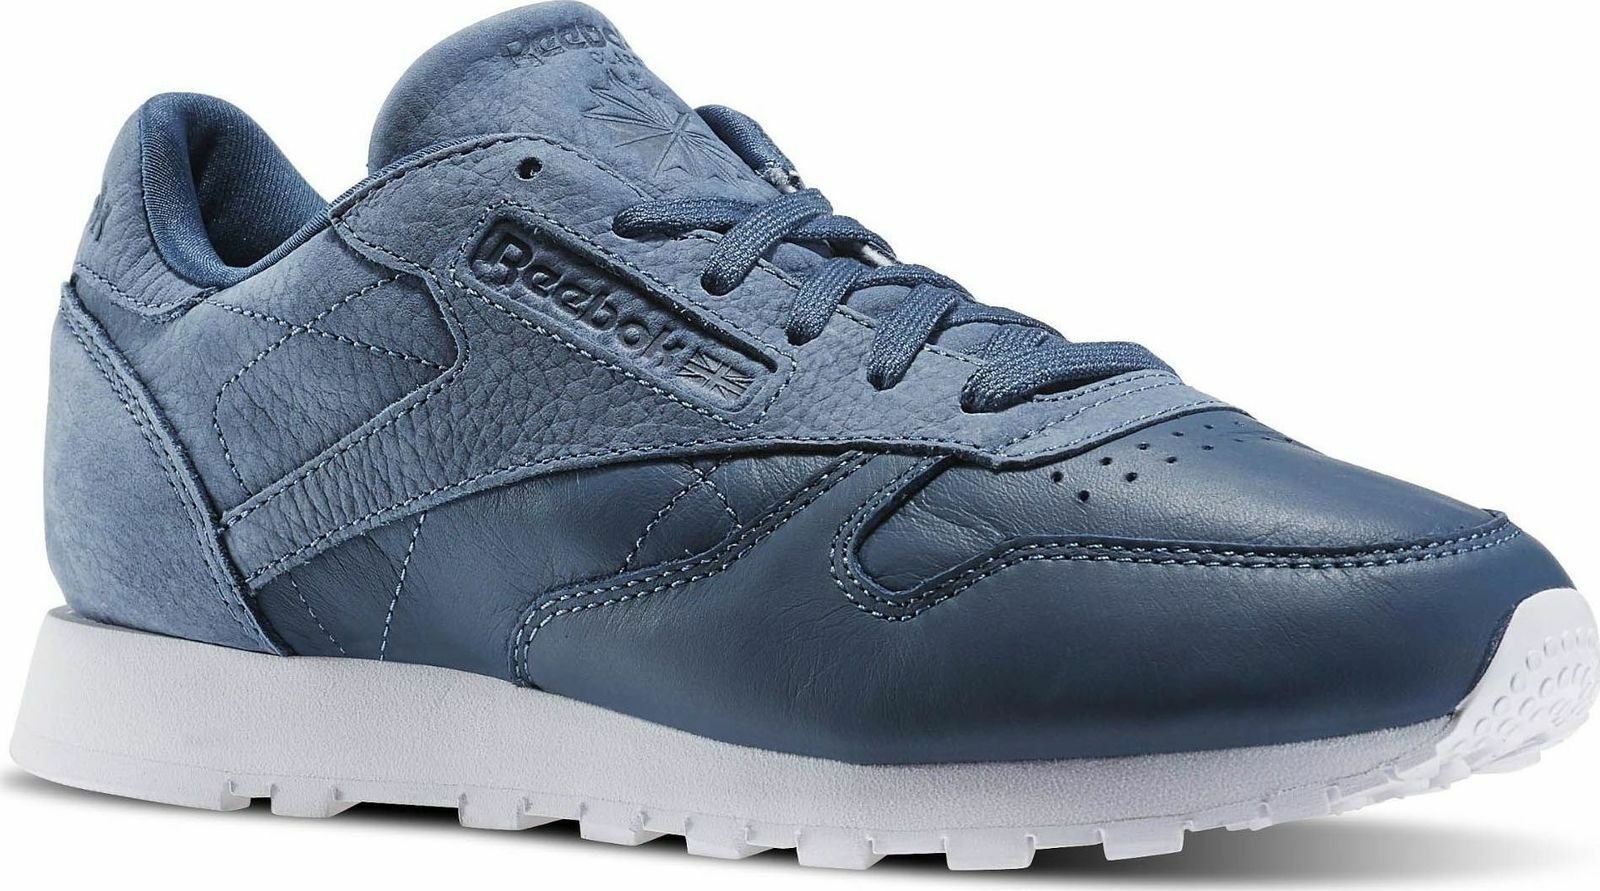 REEBOK CLASSIC LEATHER SEA YOU LATER SIZES WOMENS TRAINERS/RETRO SHOE UK SIZES LATER BLUE ac7f5d